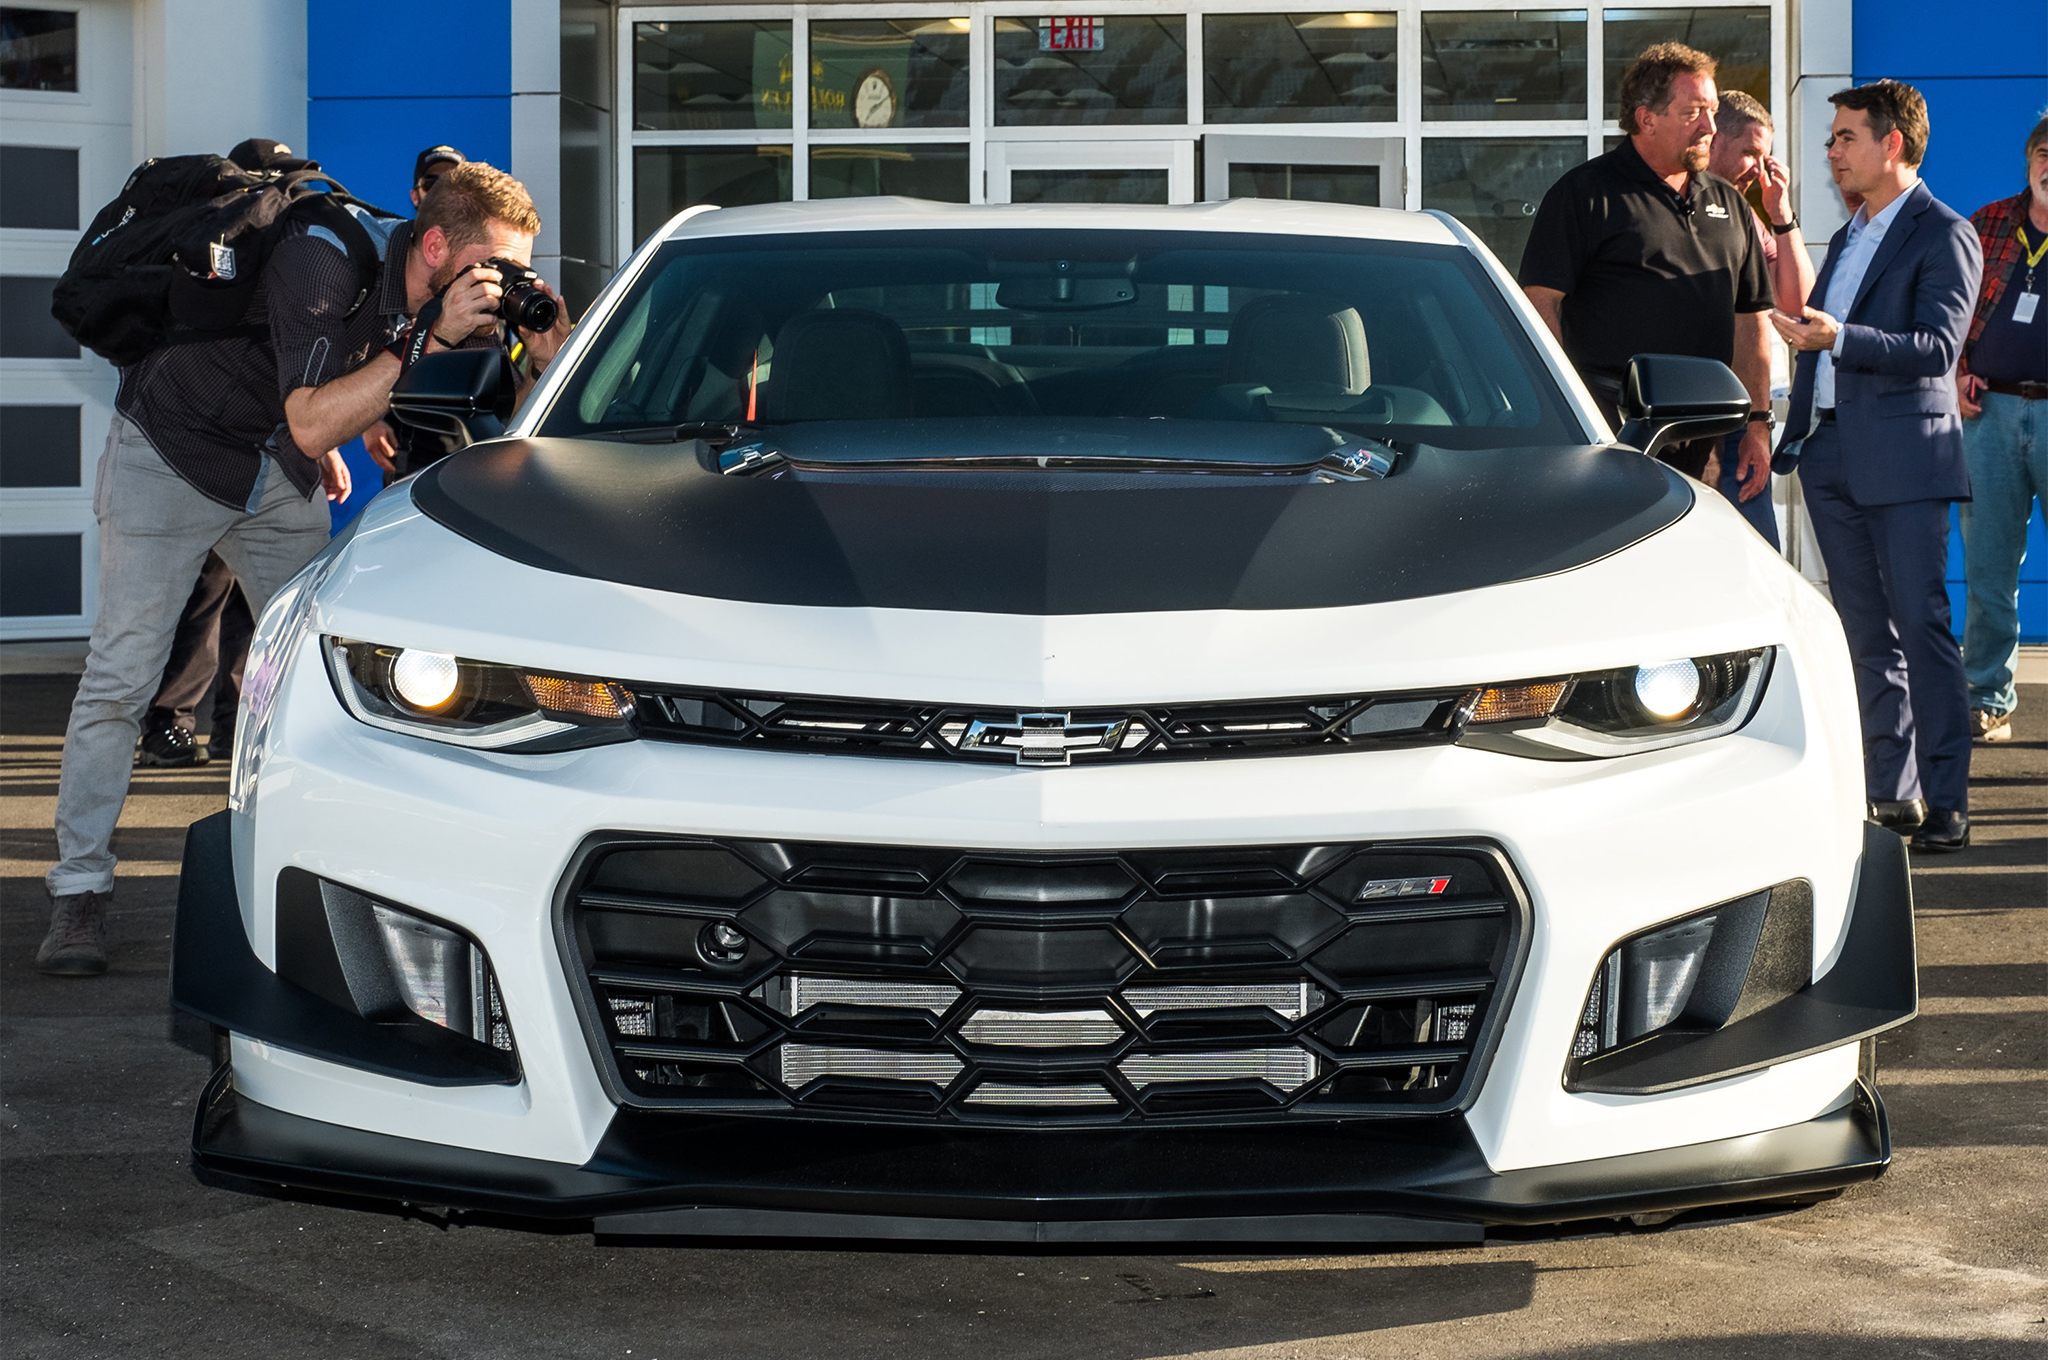 2018-Chevrolet-Camaro-ZL1-1LE-reveal-front-end